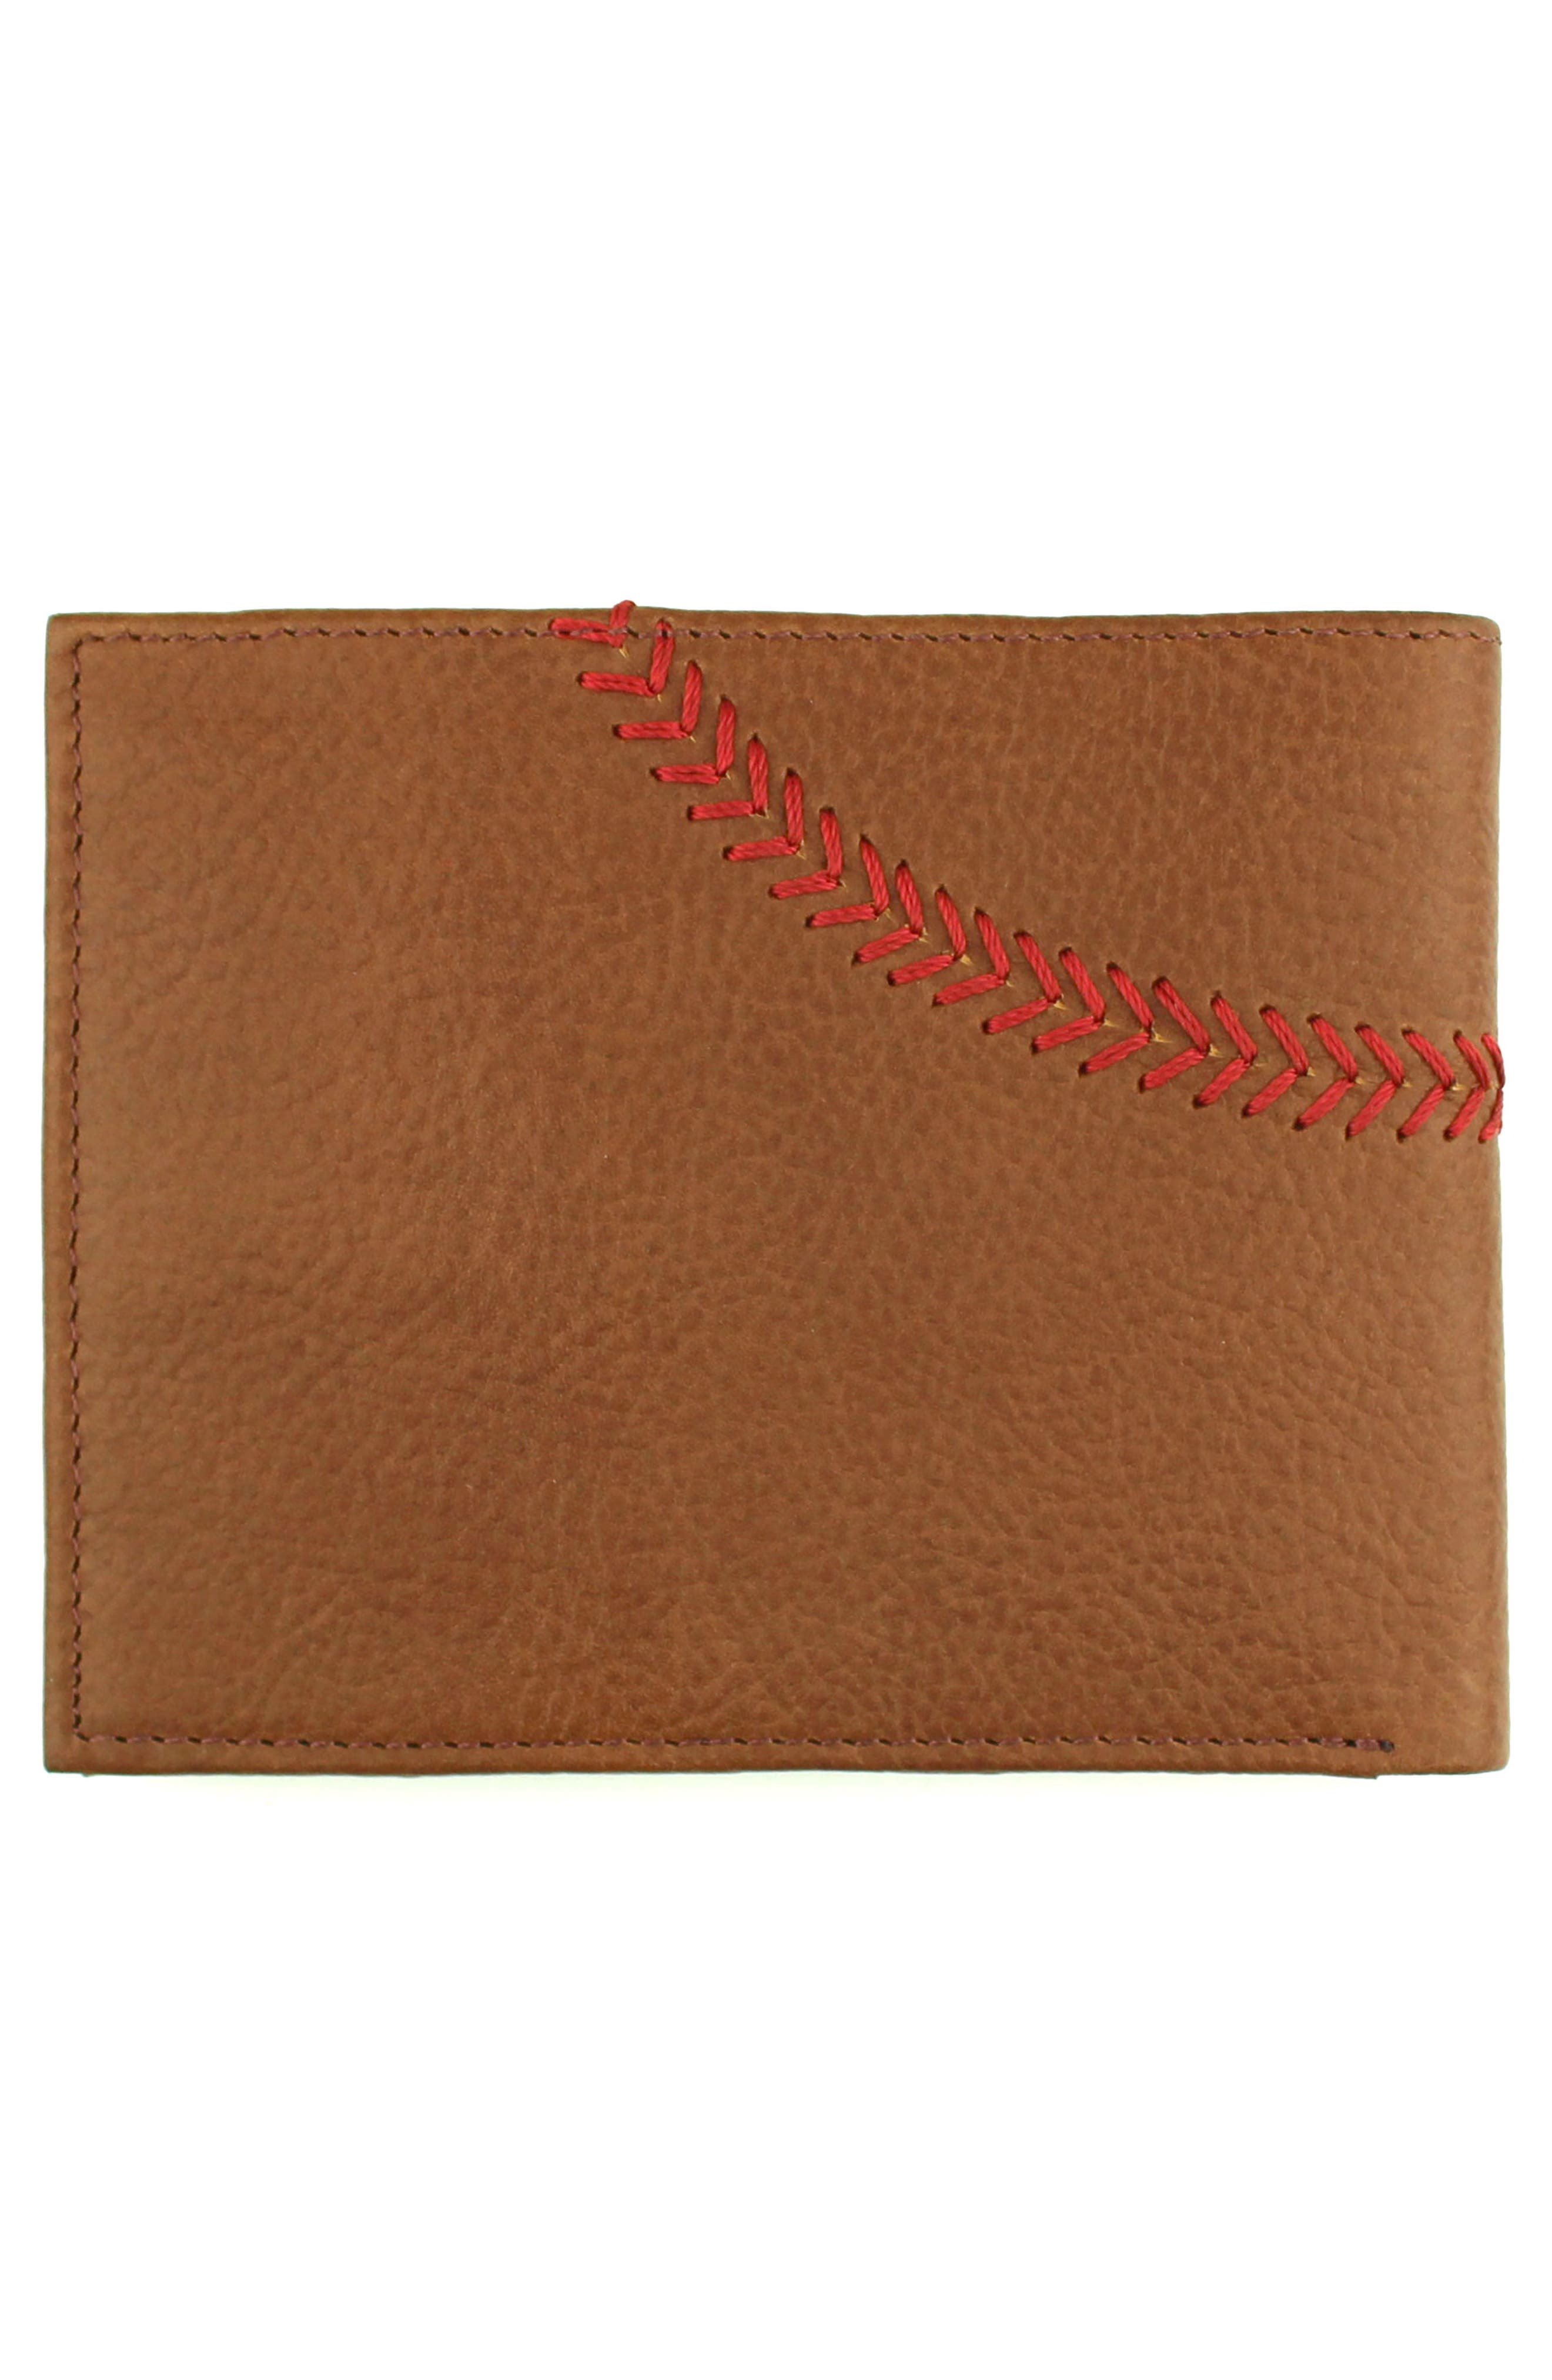 Home Run Bifold Leather Wallet,                             Alternate thumbnail 2, color,                             202